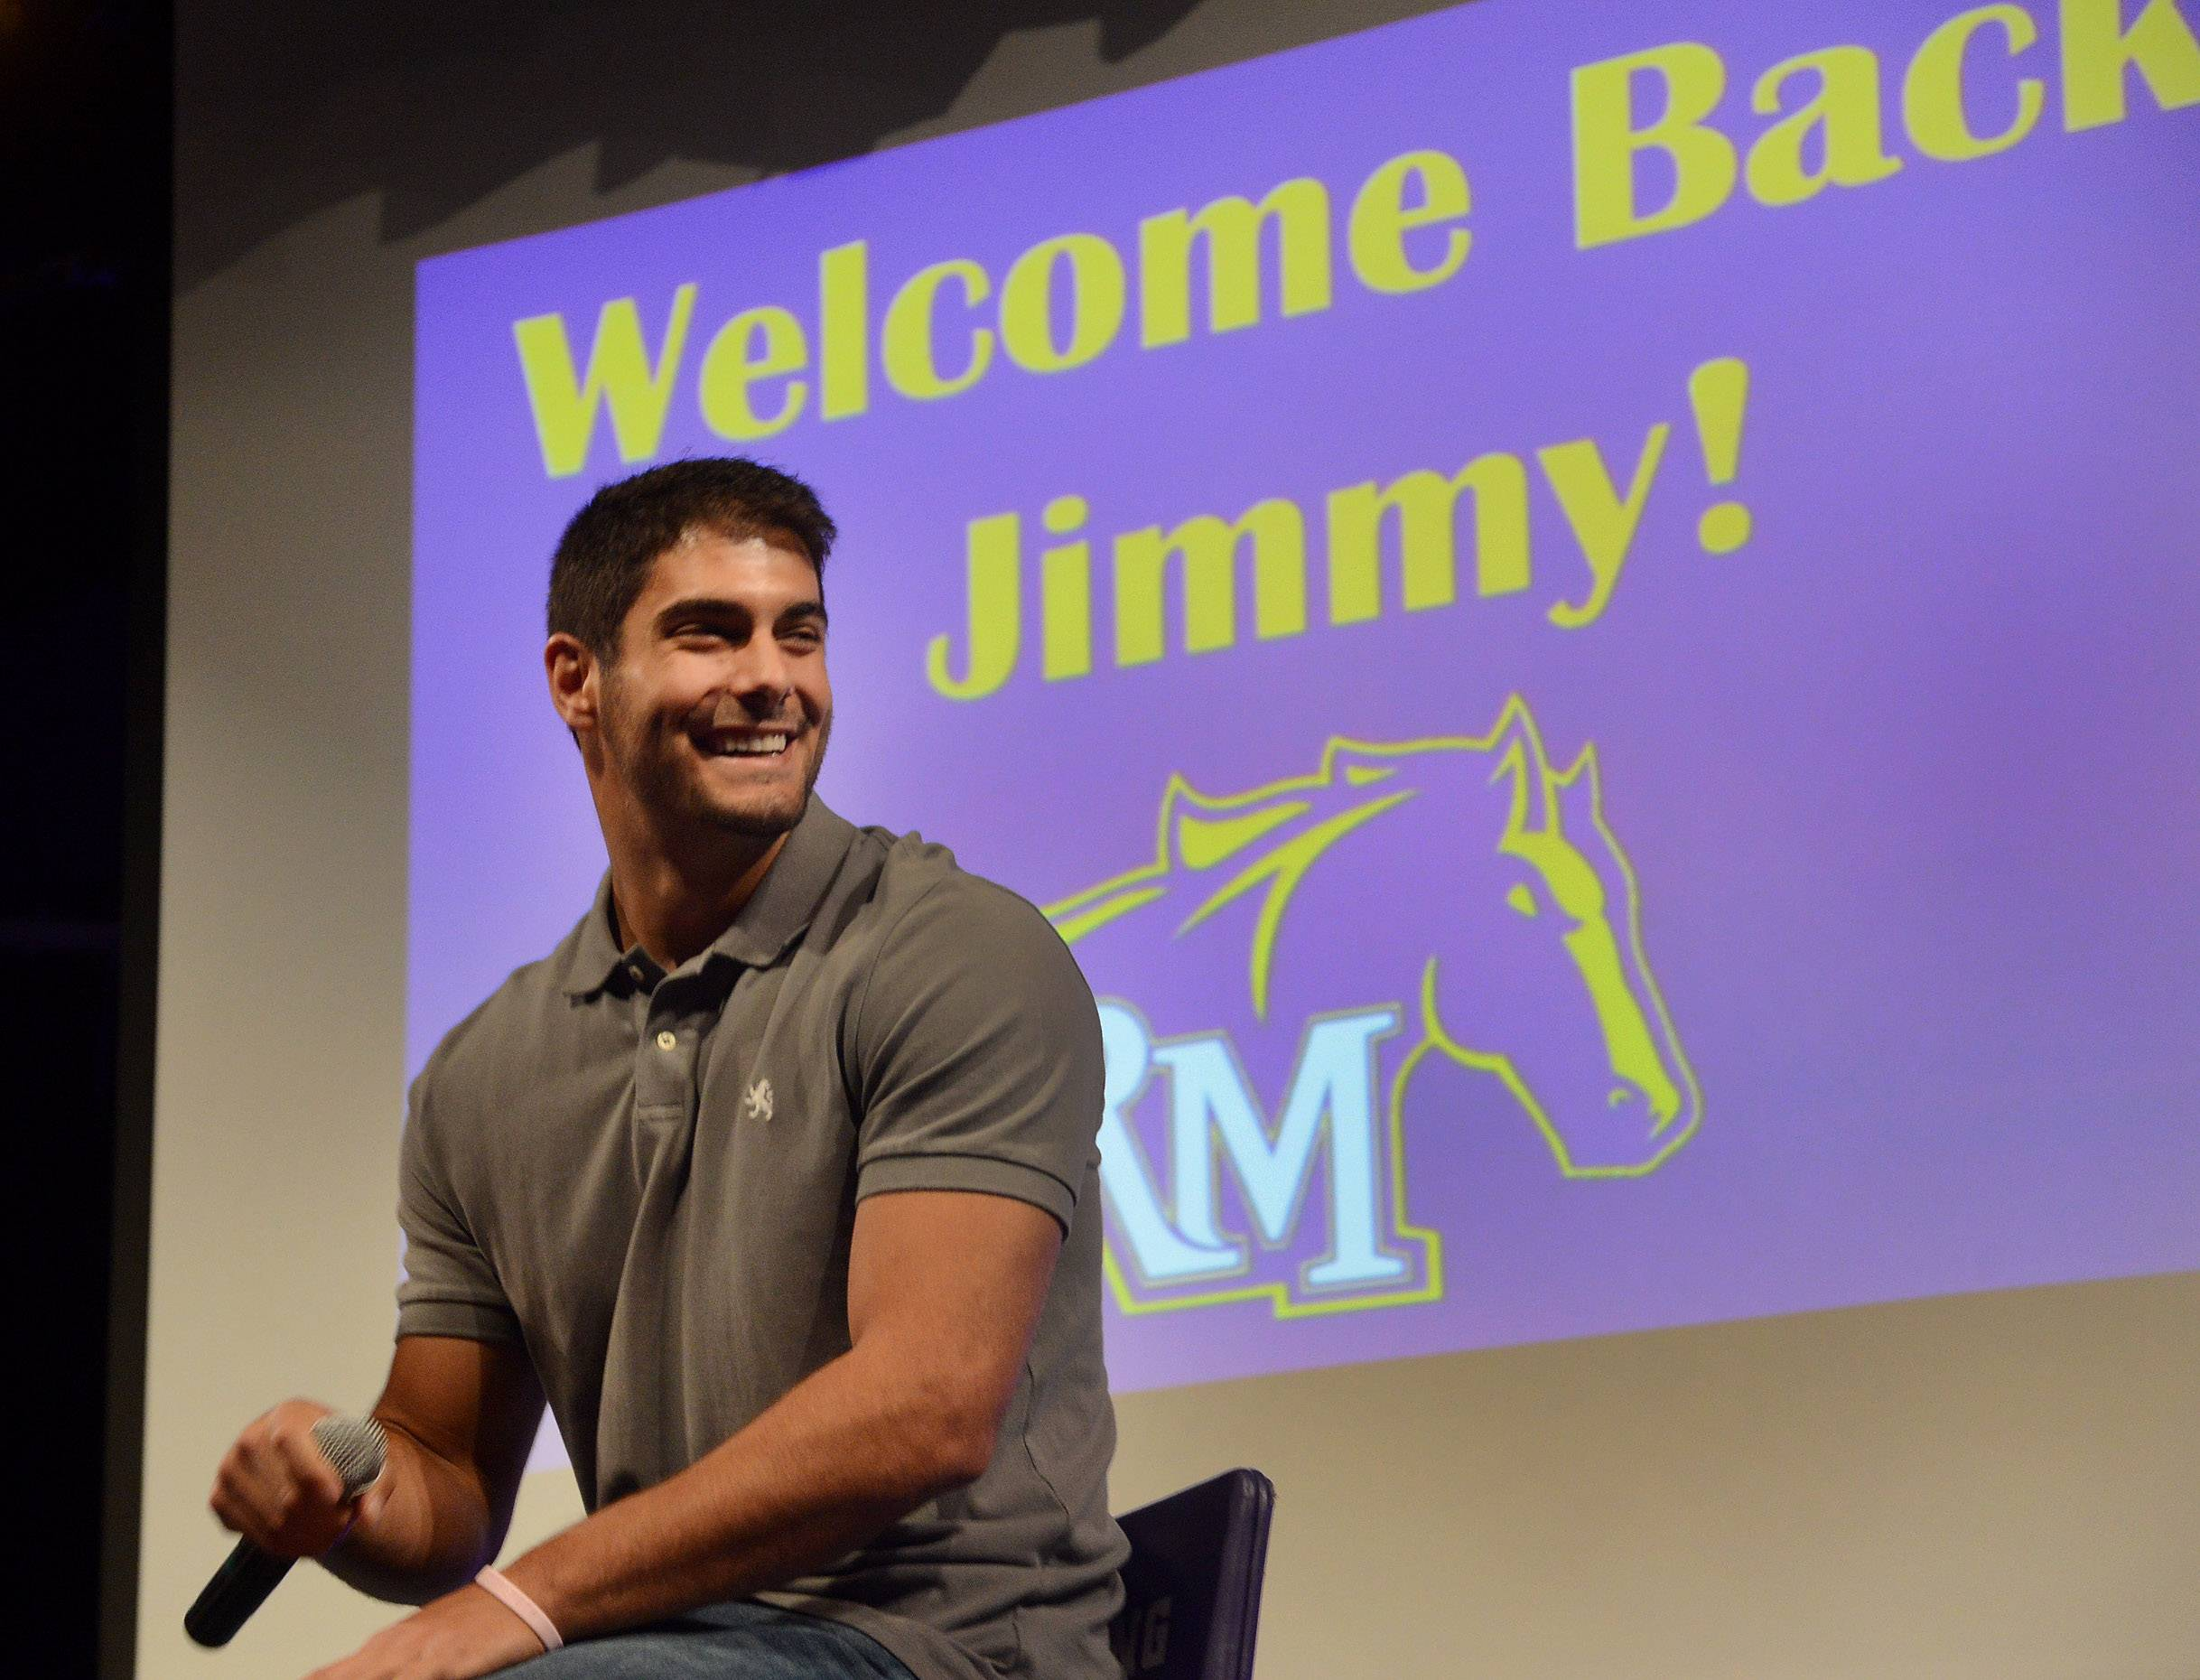 Meadows welcomes back future NFL QB Garoppolo